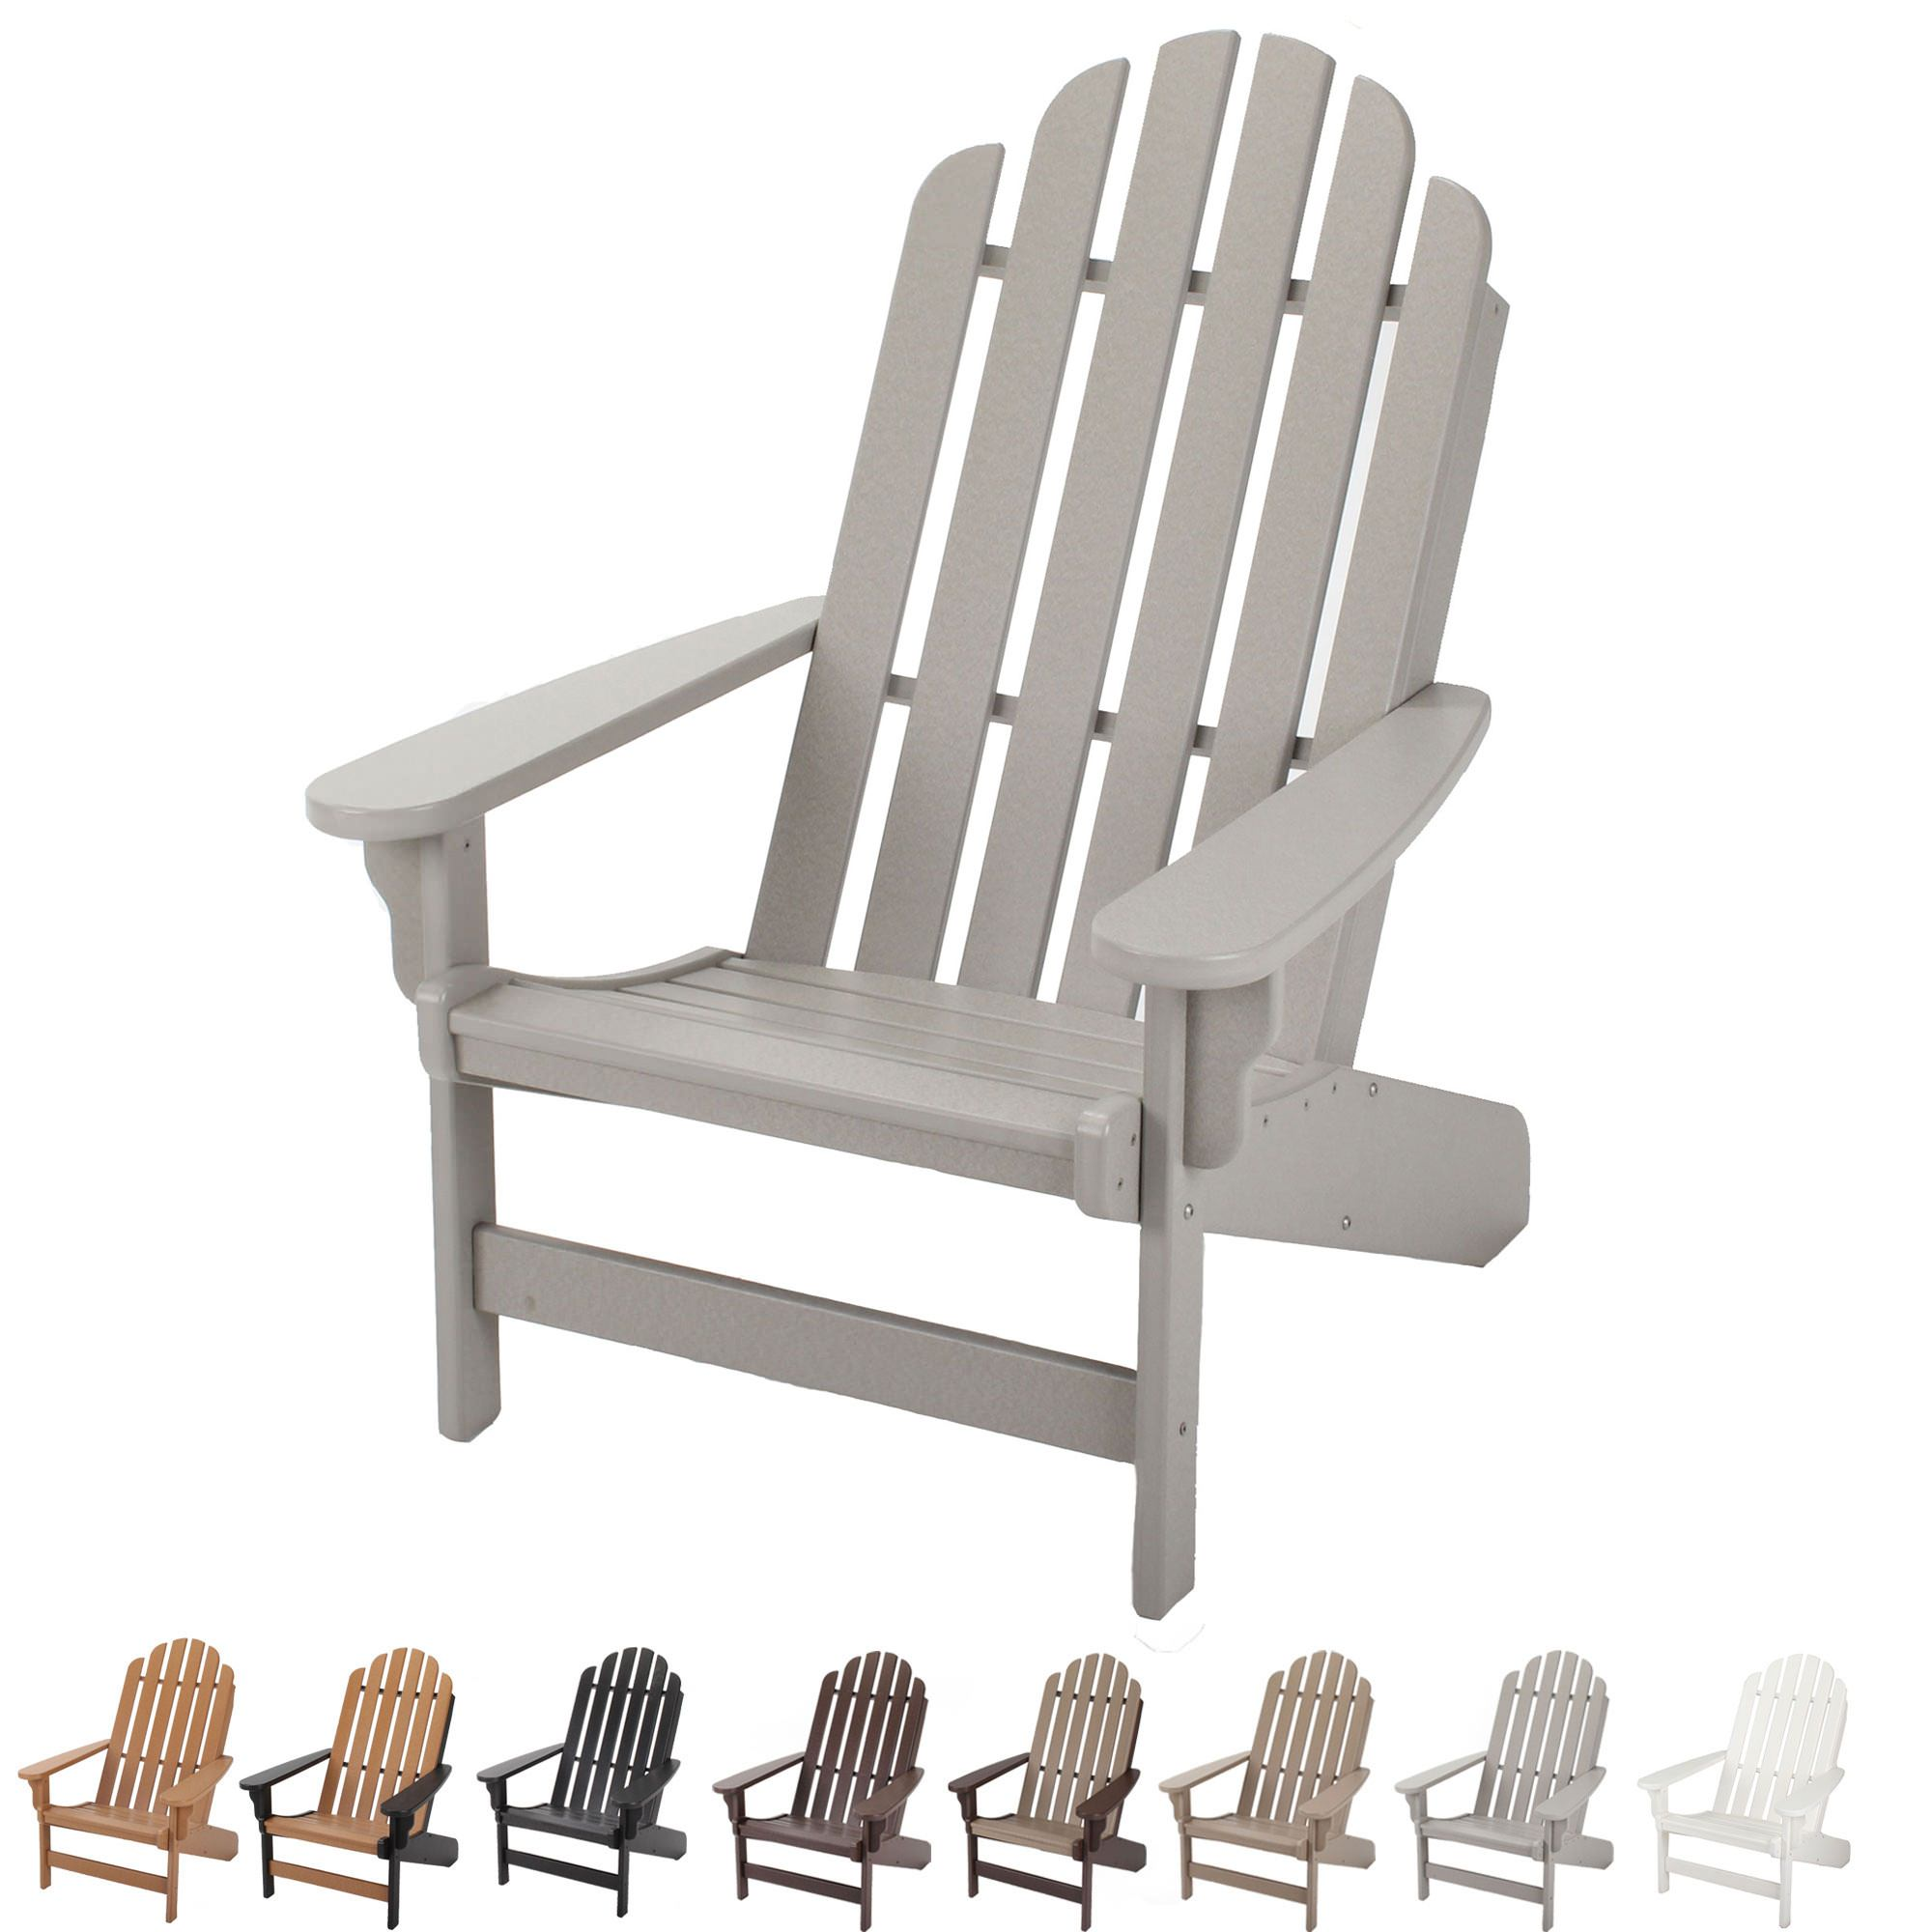 Lifetime Adirondack Chair Durawood Essential Adirondack Chair Pawleys Island